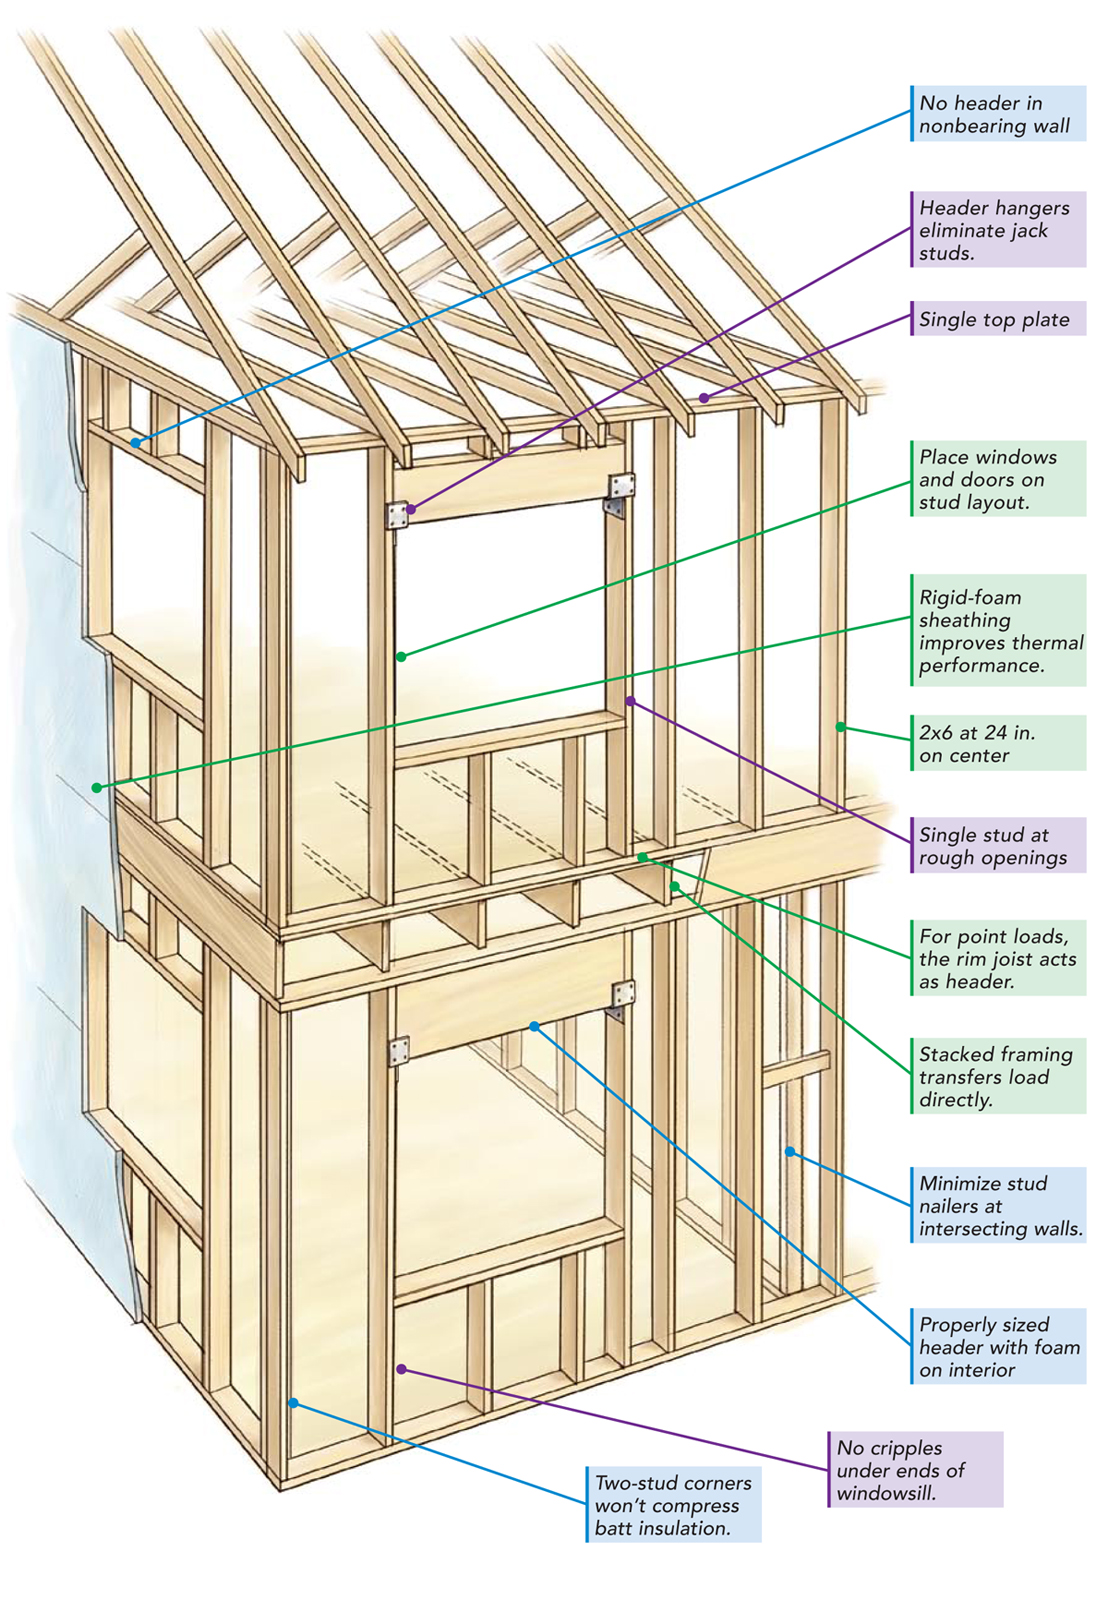 24 in on center framing fine homebuilding for Homebuilding com